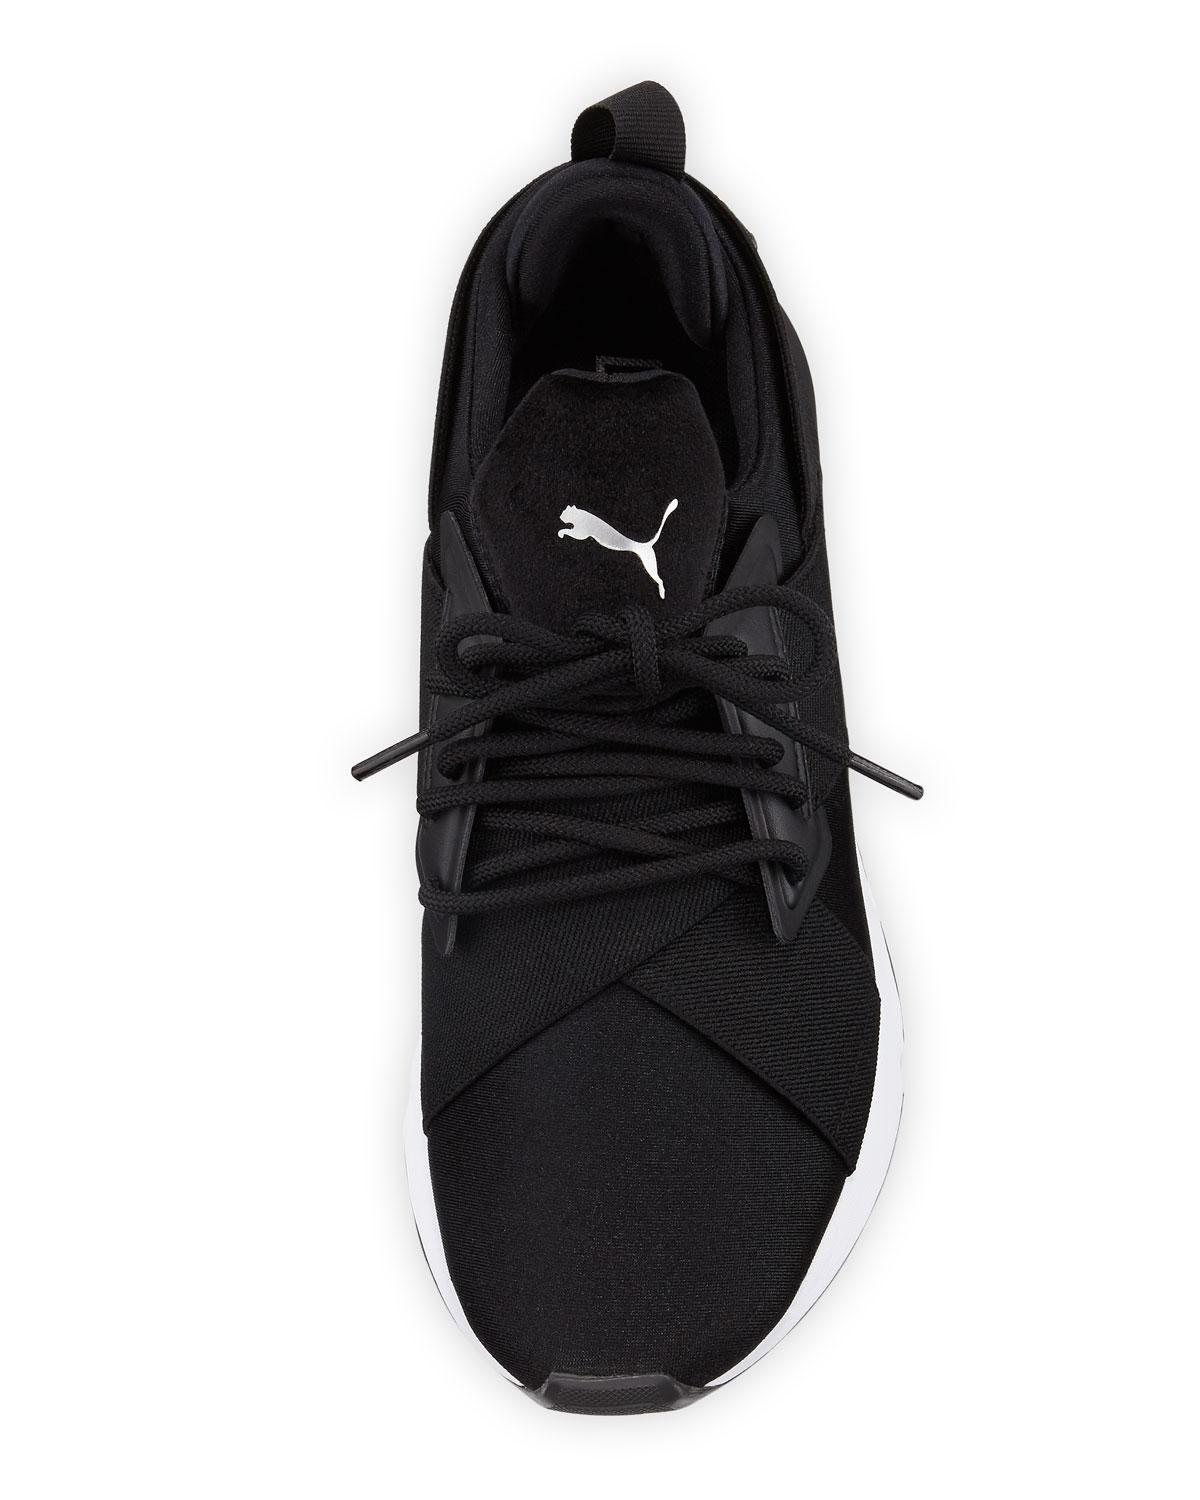 65aeaf9aee3f4a PUMA - Black Muse Satin Lace-up Sneakers for Men - Lyst. View fullscreen